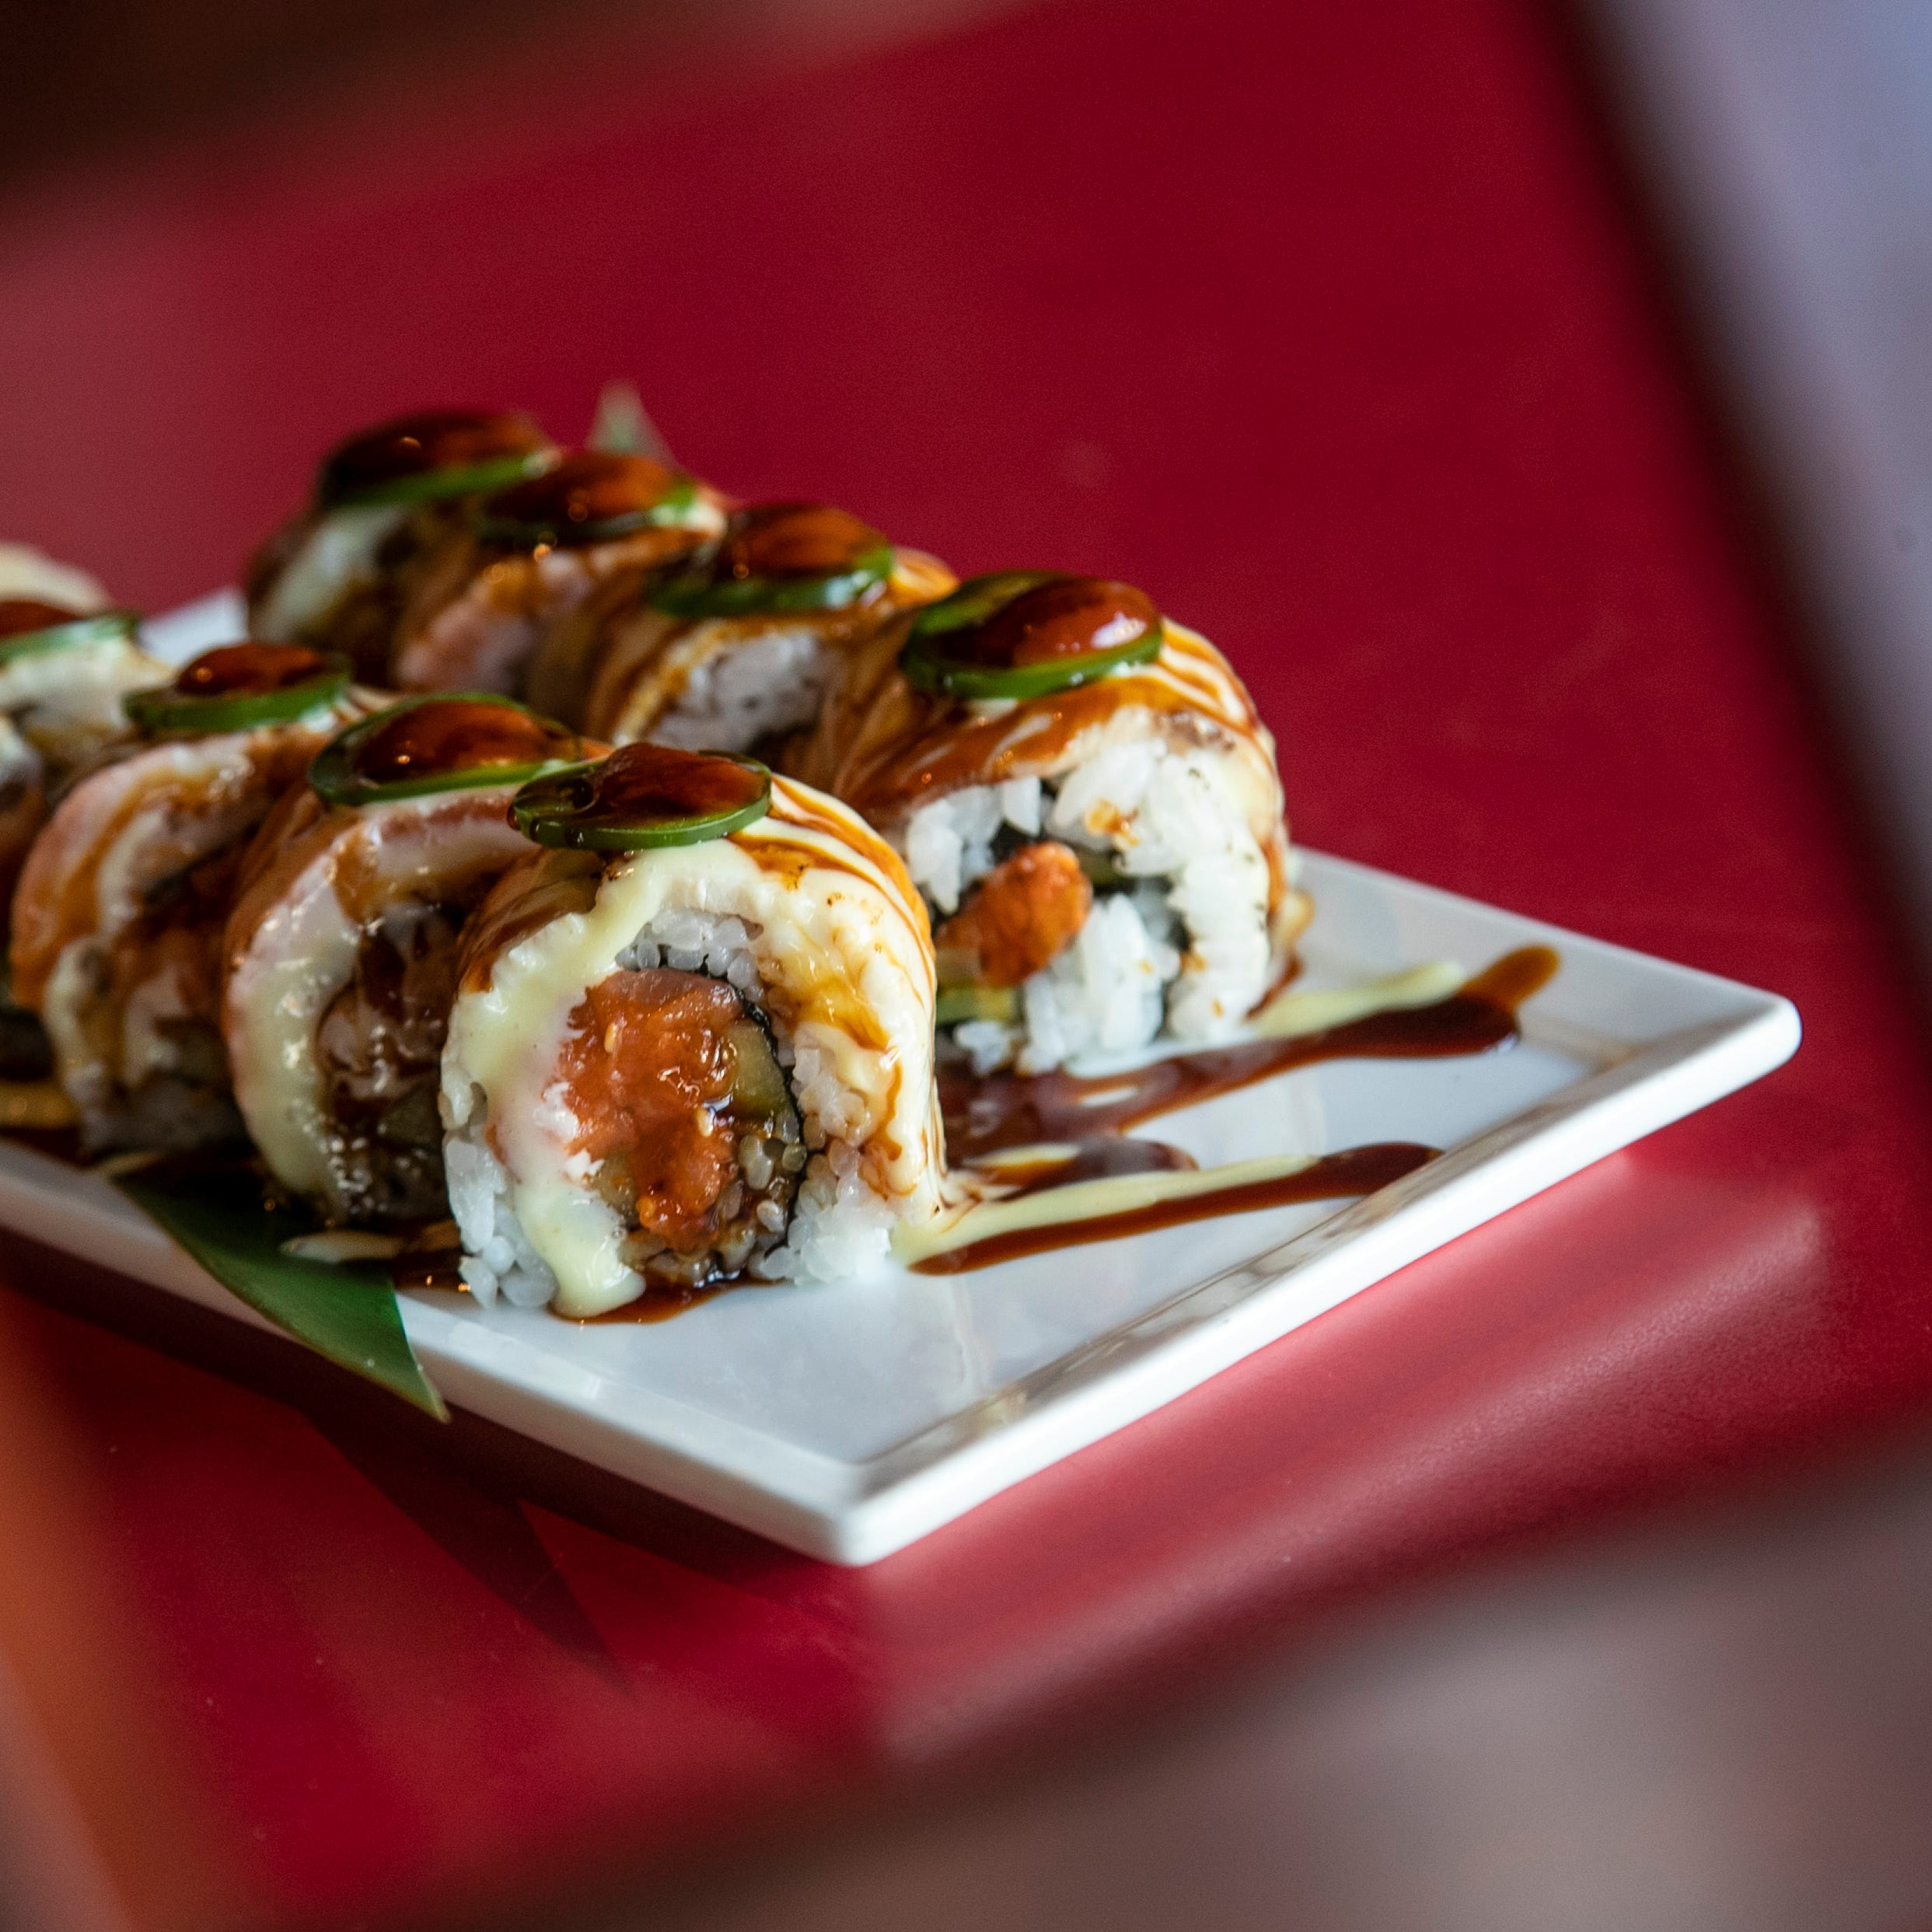 With 60+ menu items, Wild Ginger in the Highlands is worth a visit